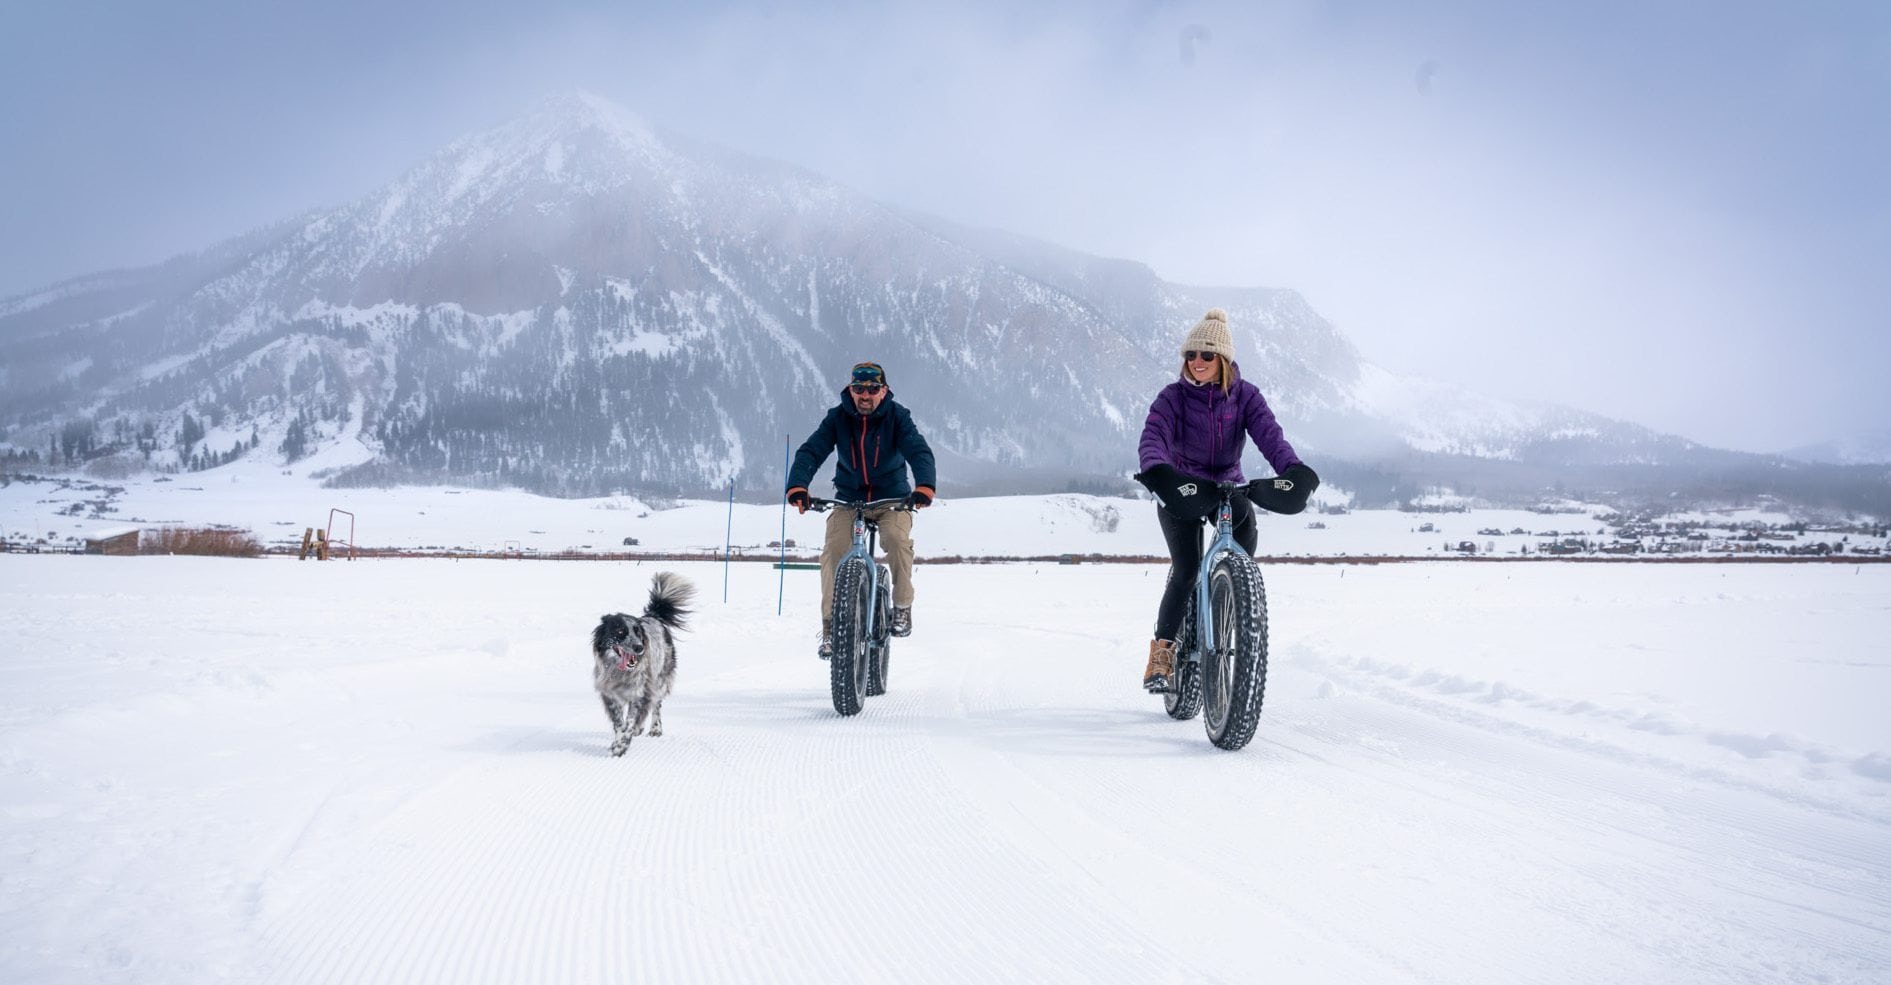 Fat Biking in Crested Butte // Enjoy the winter wonderland of Crested Butte Colorado for skiing, biking, good food, and more. Check out this complete Crested Butte winter travel guide!